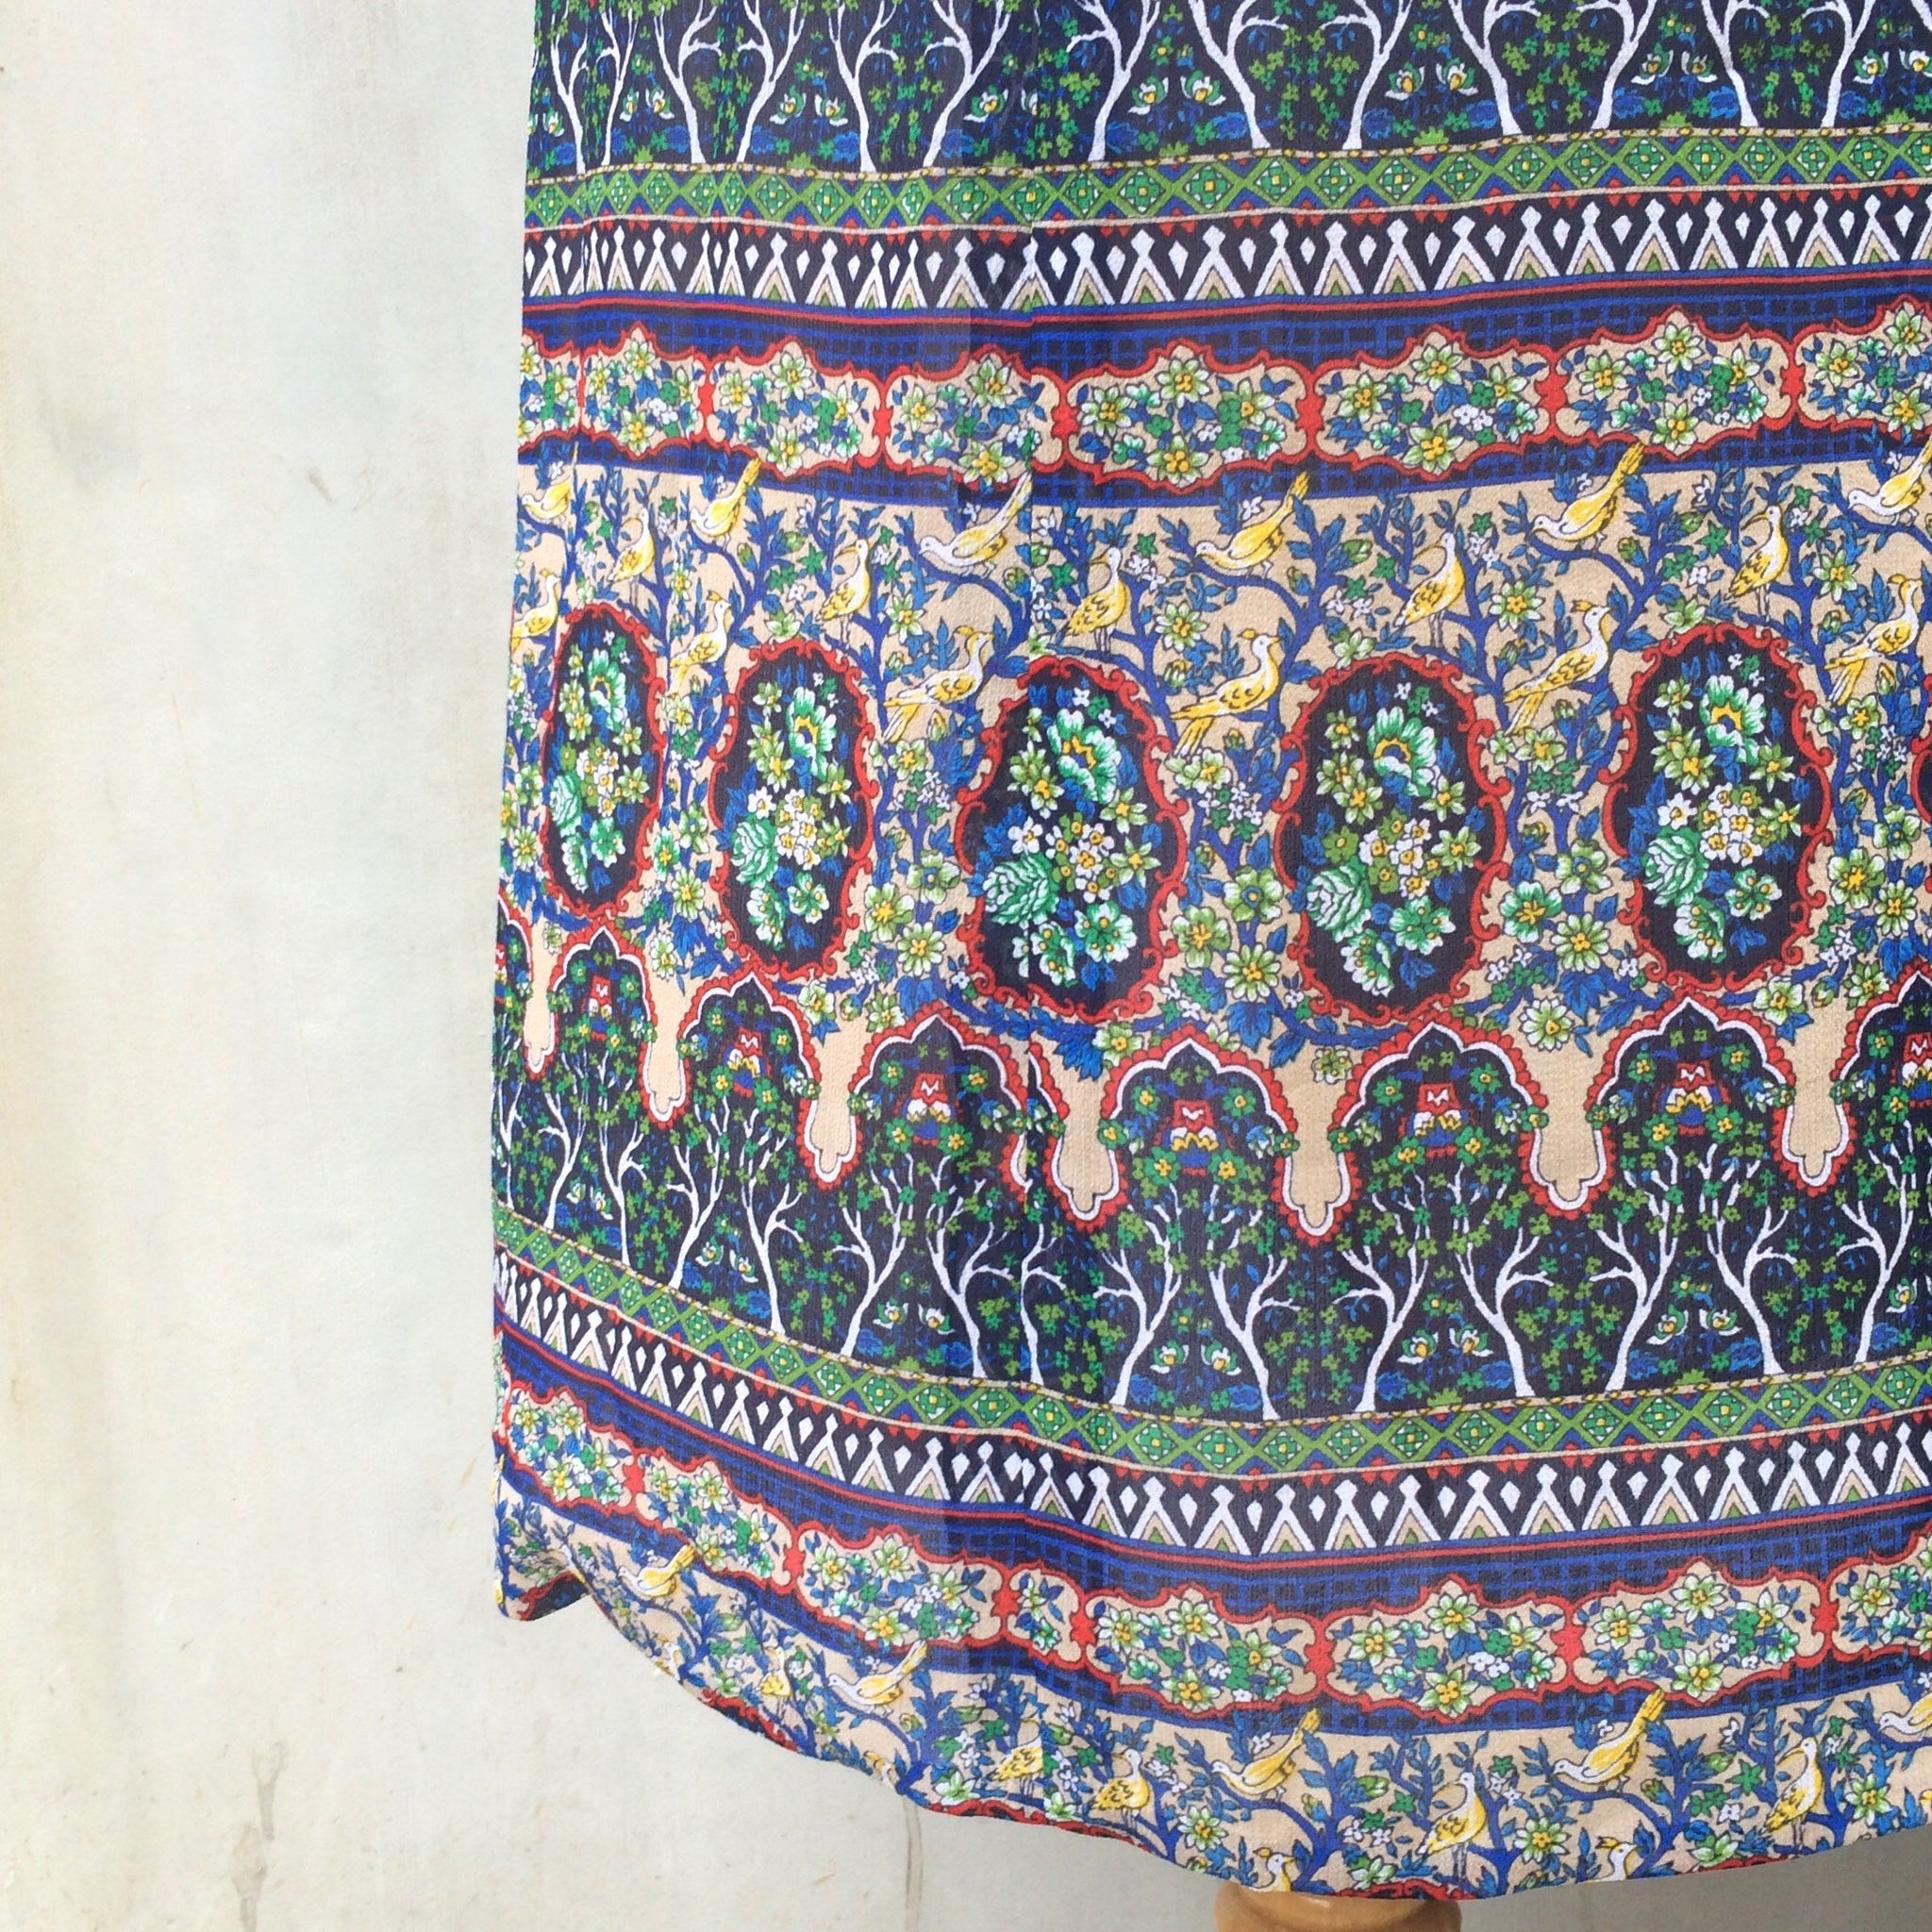 Vintage 1960s 1970s Indian ethnic print Midi skirt with Trees and Ornate Print